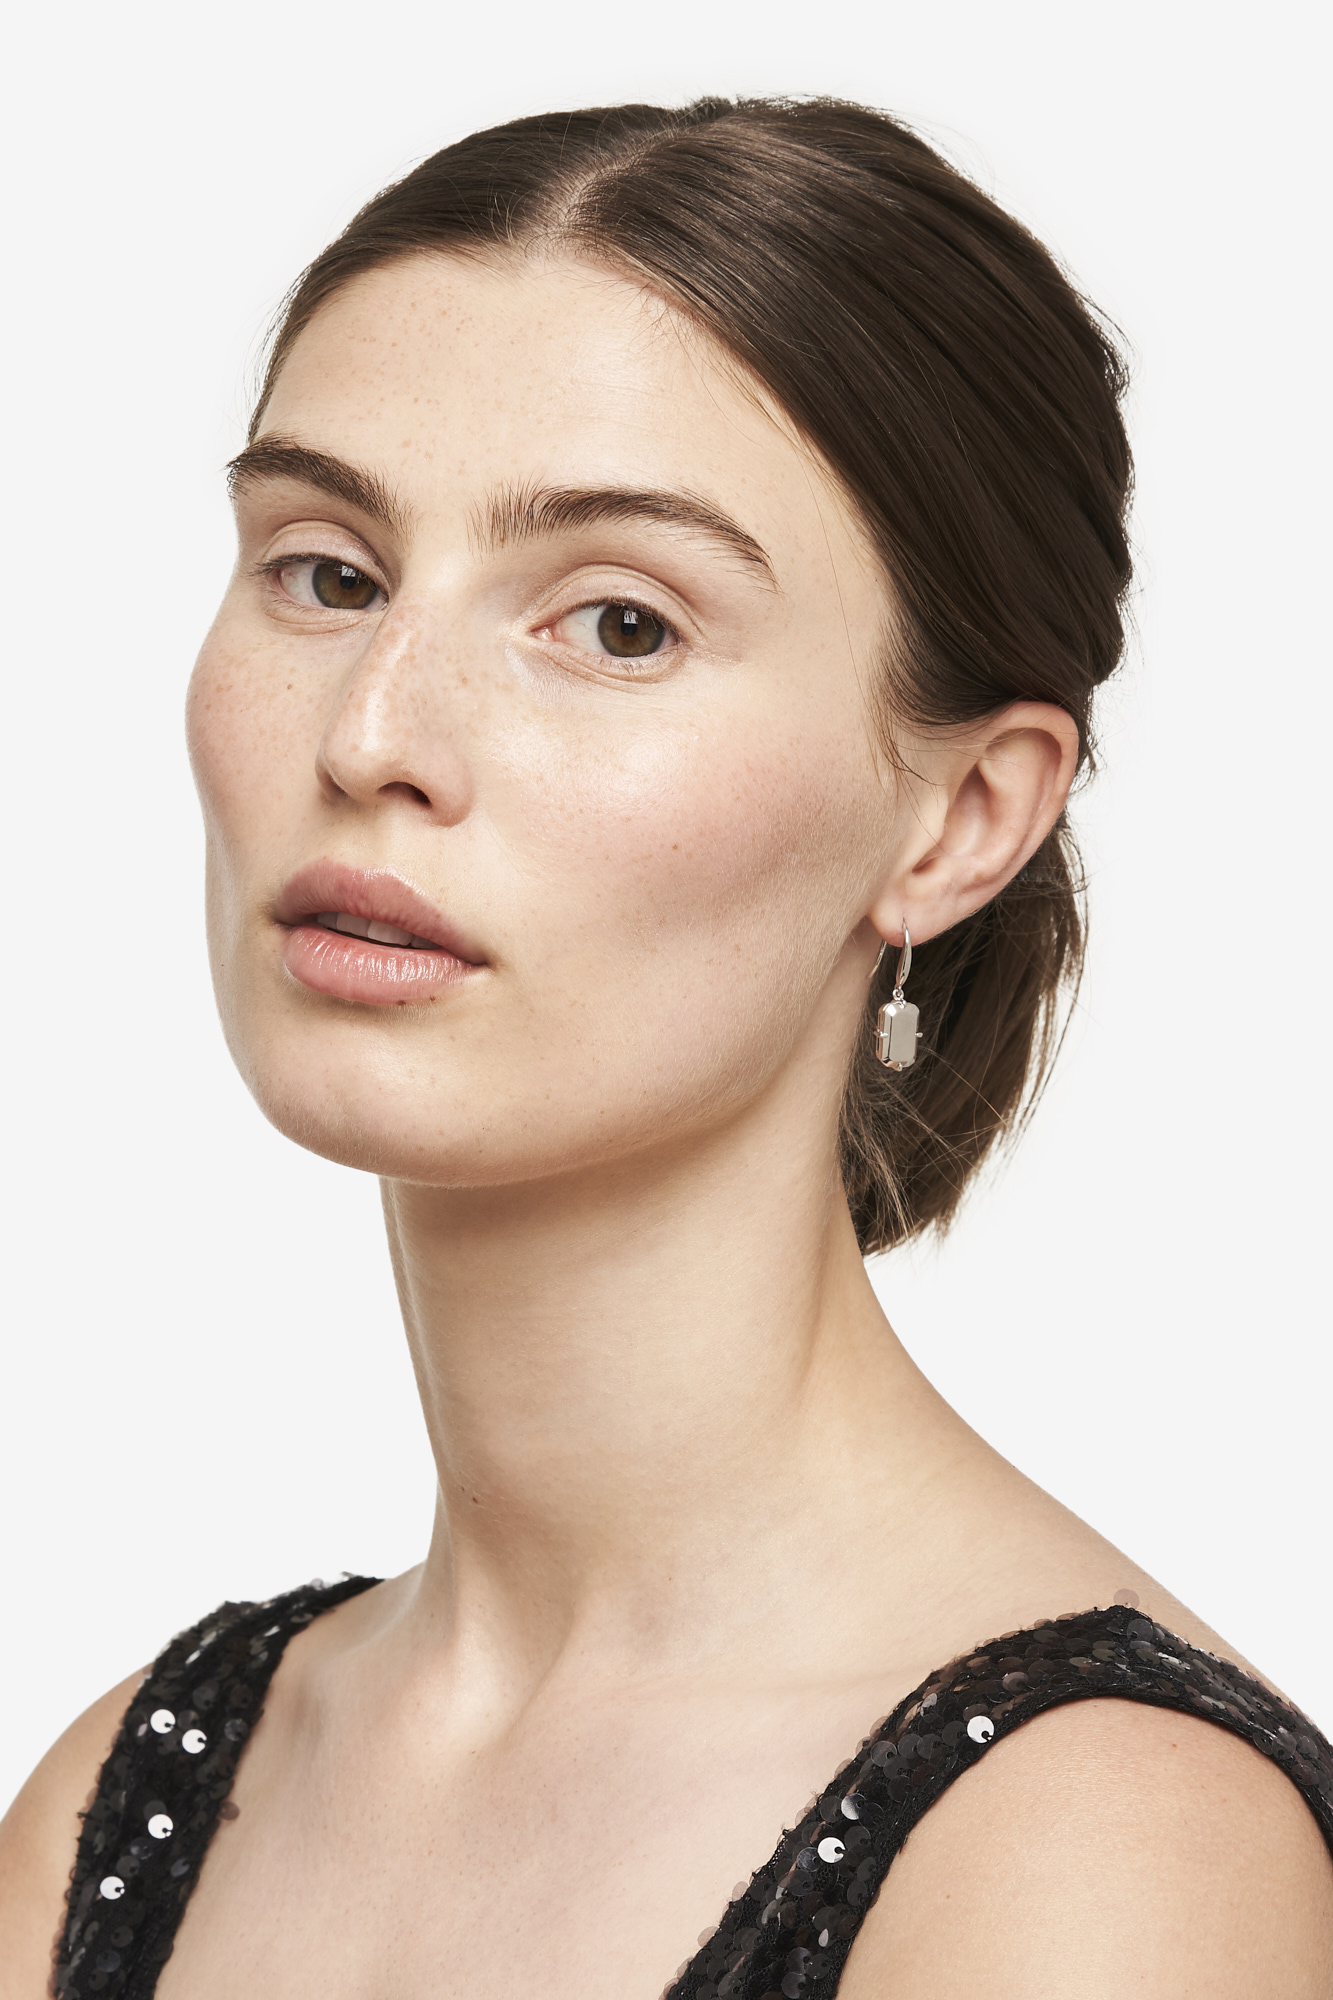 19-03-5-1-018-114-09_Hook Earring_Silver_01